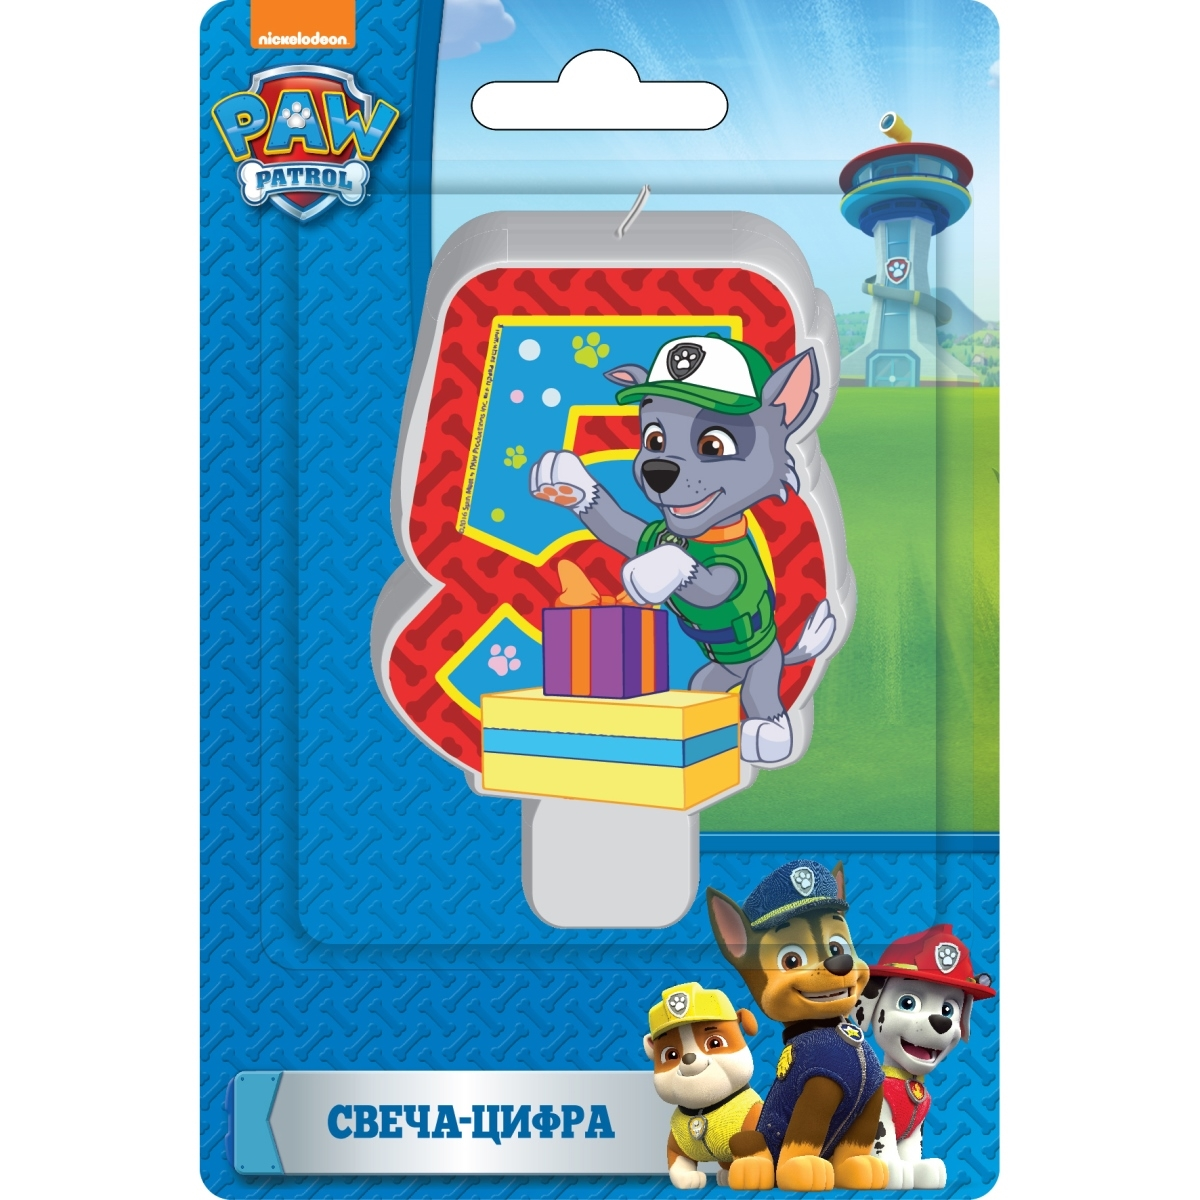 Paw Patrol Paw Patrol Свеча Paw Patrol «Цифра 5» 20cm canine patrol dog toys russian anime doll action figures car patrol puppy toy patrulla canina juguetes gift for child m134